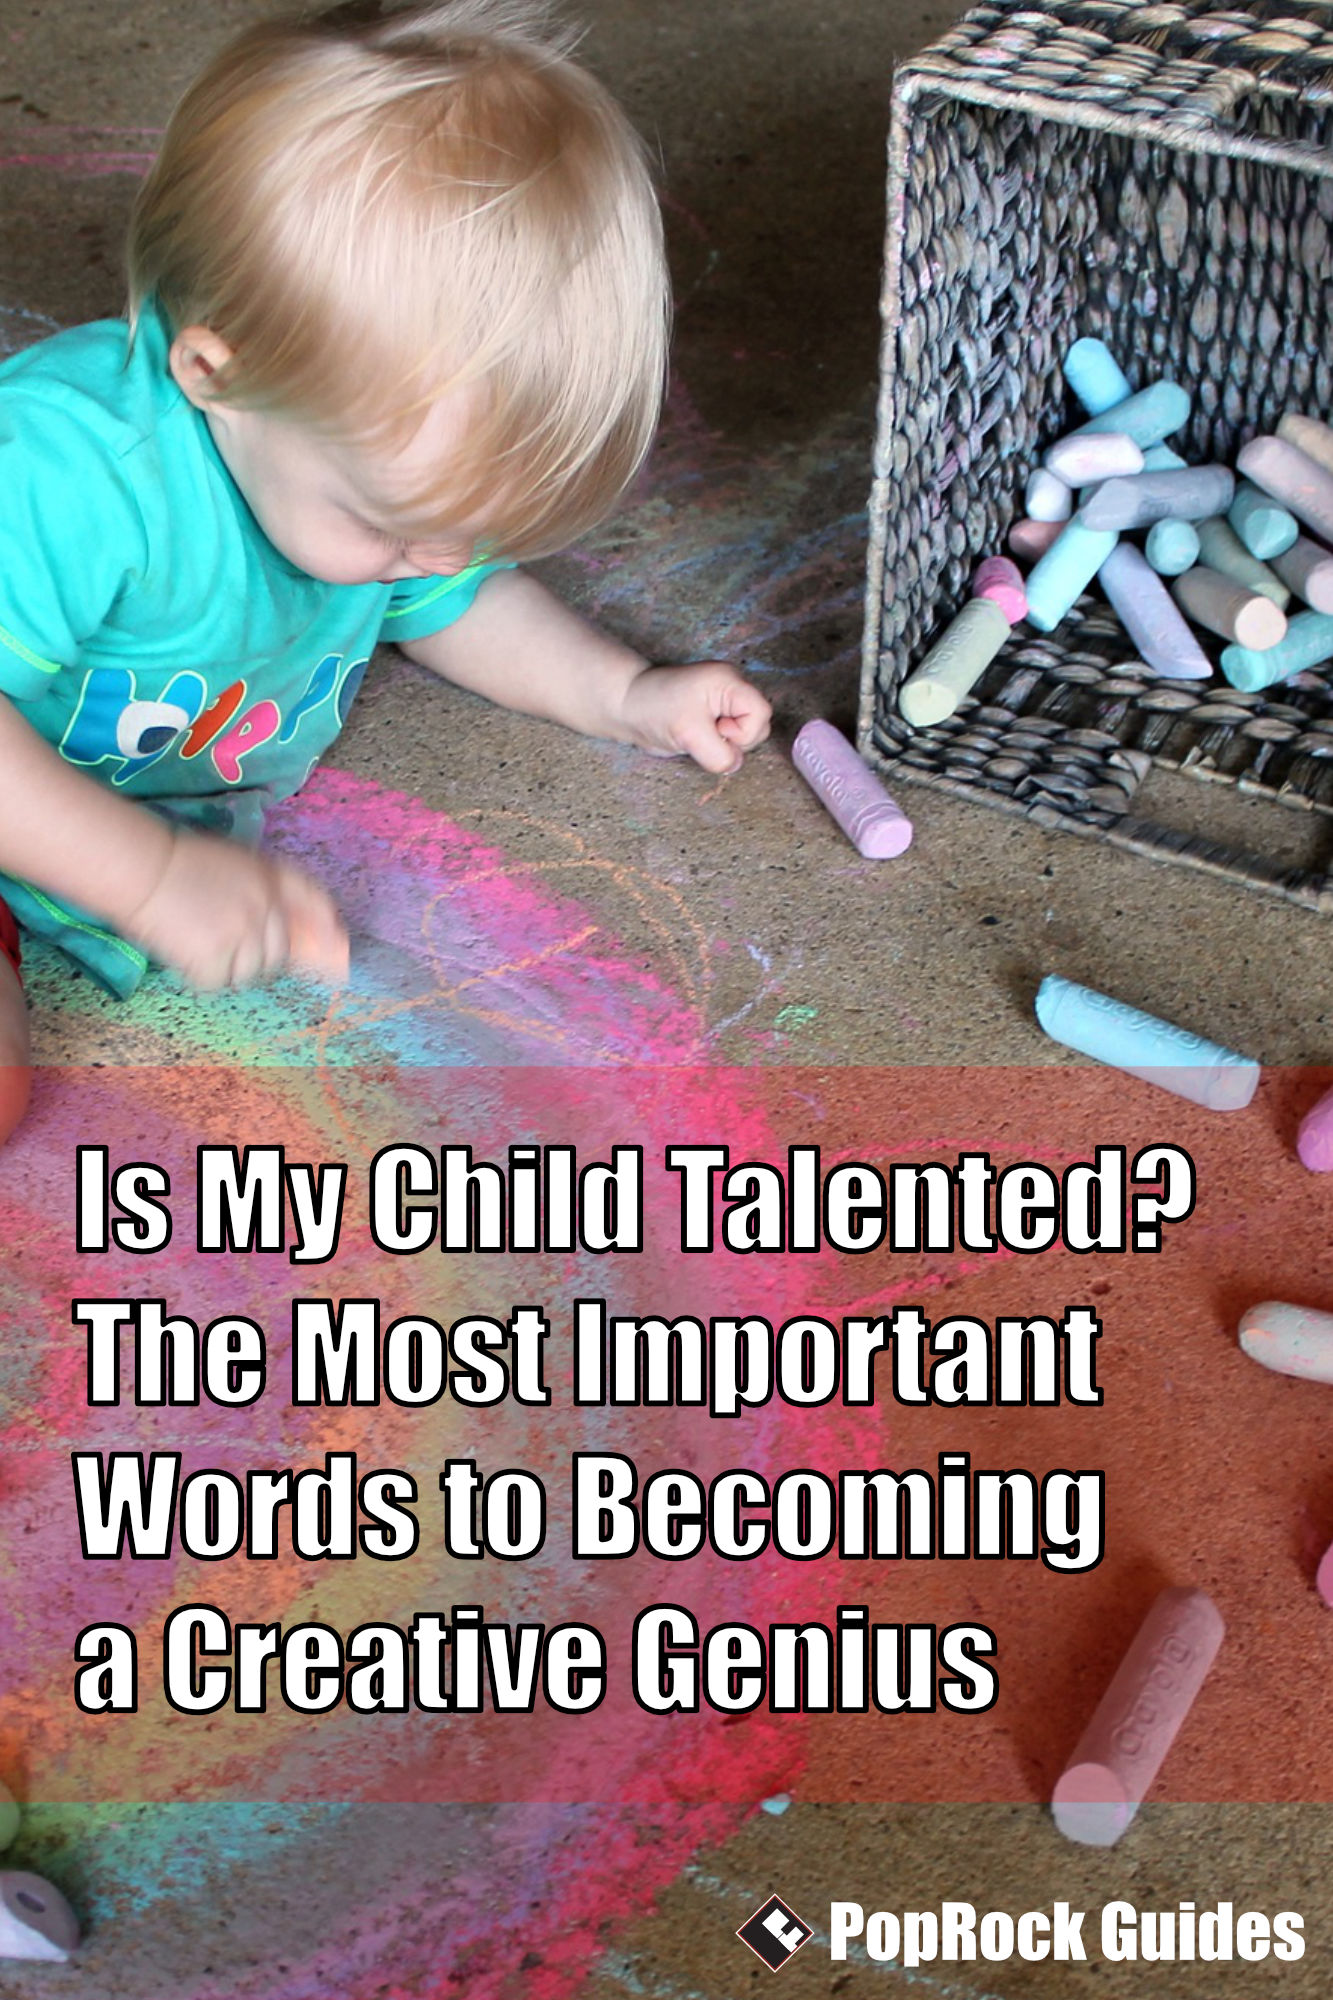 Is My Child Talented? The Most Important Words To Becoming a Creative Genius